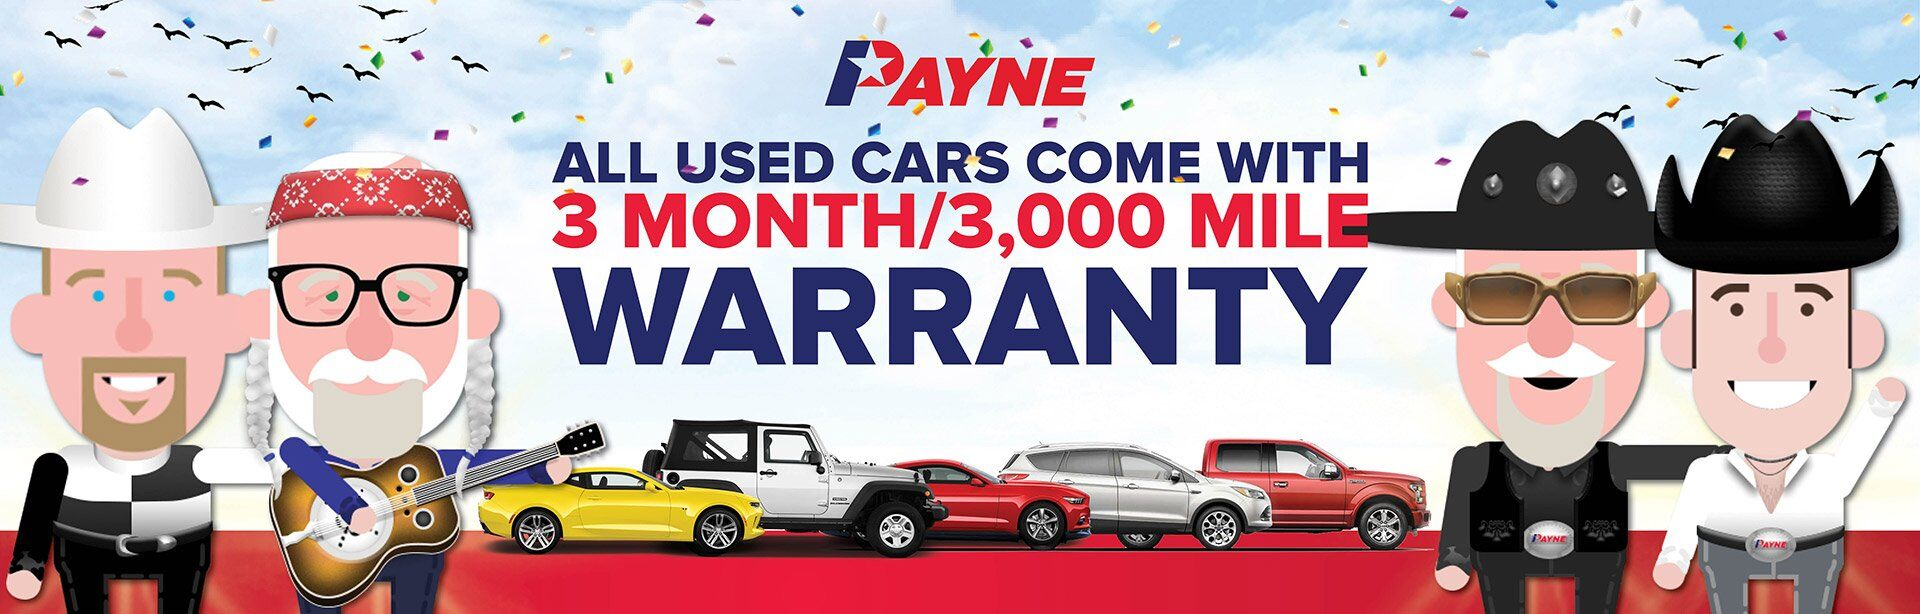 Used Car Warranty